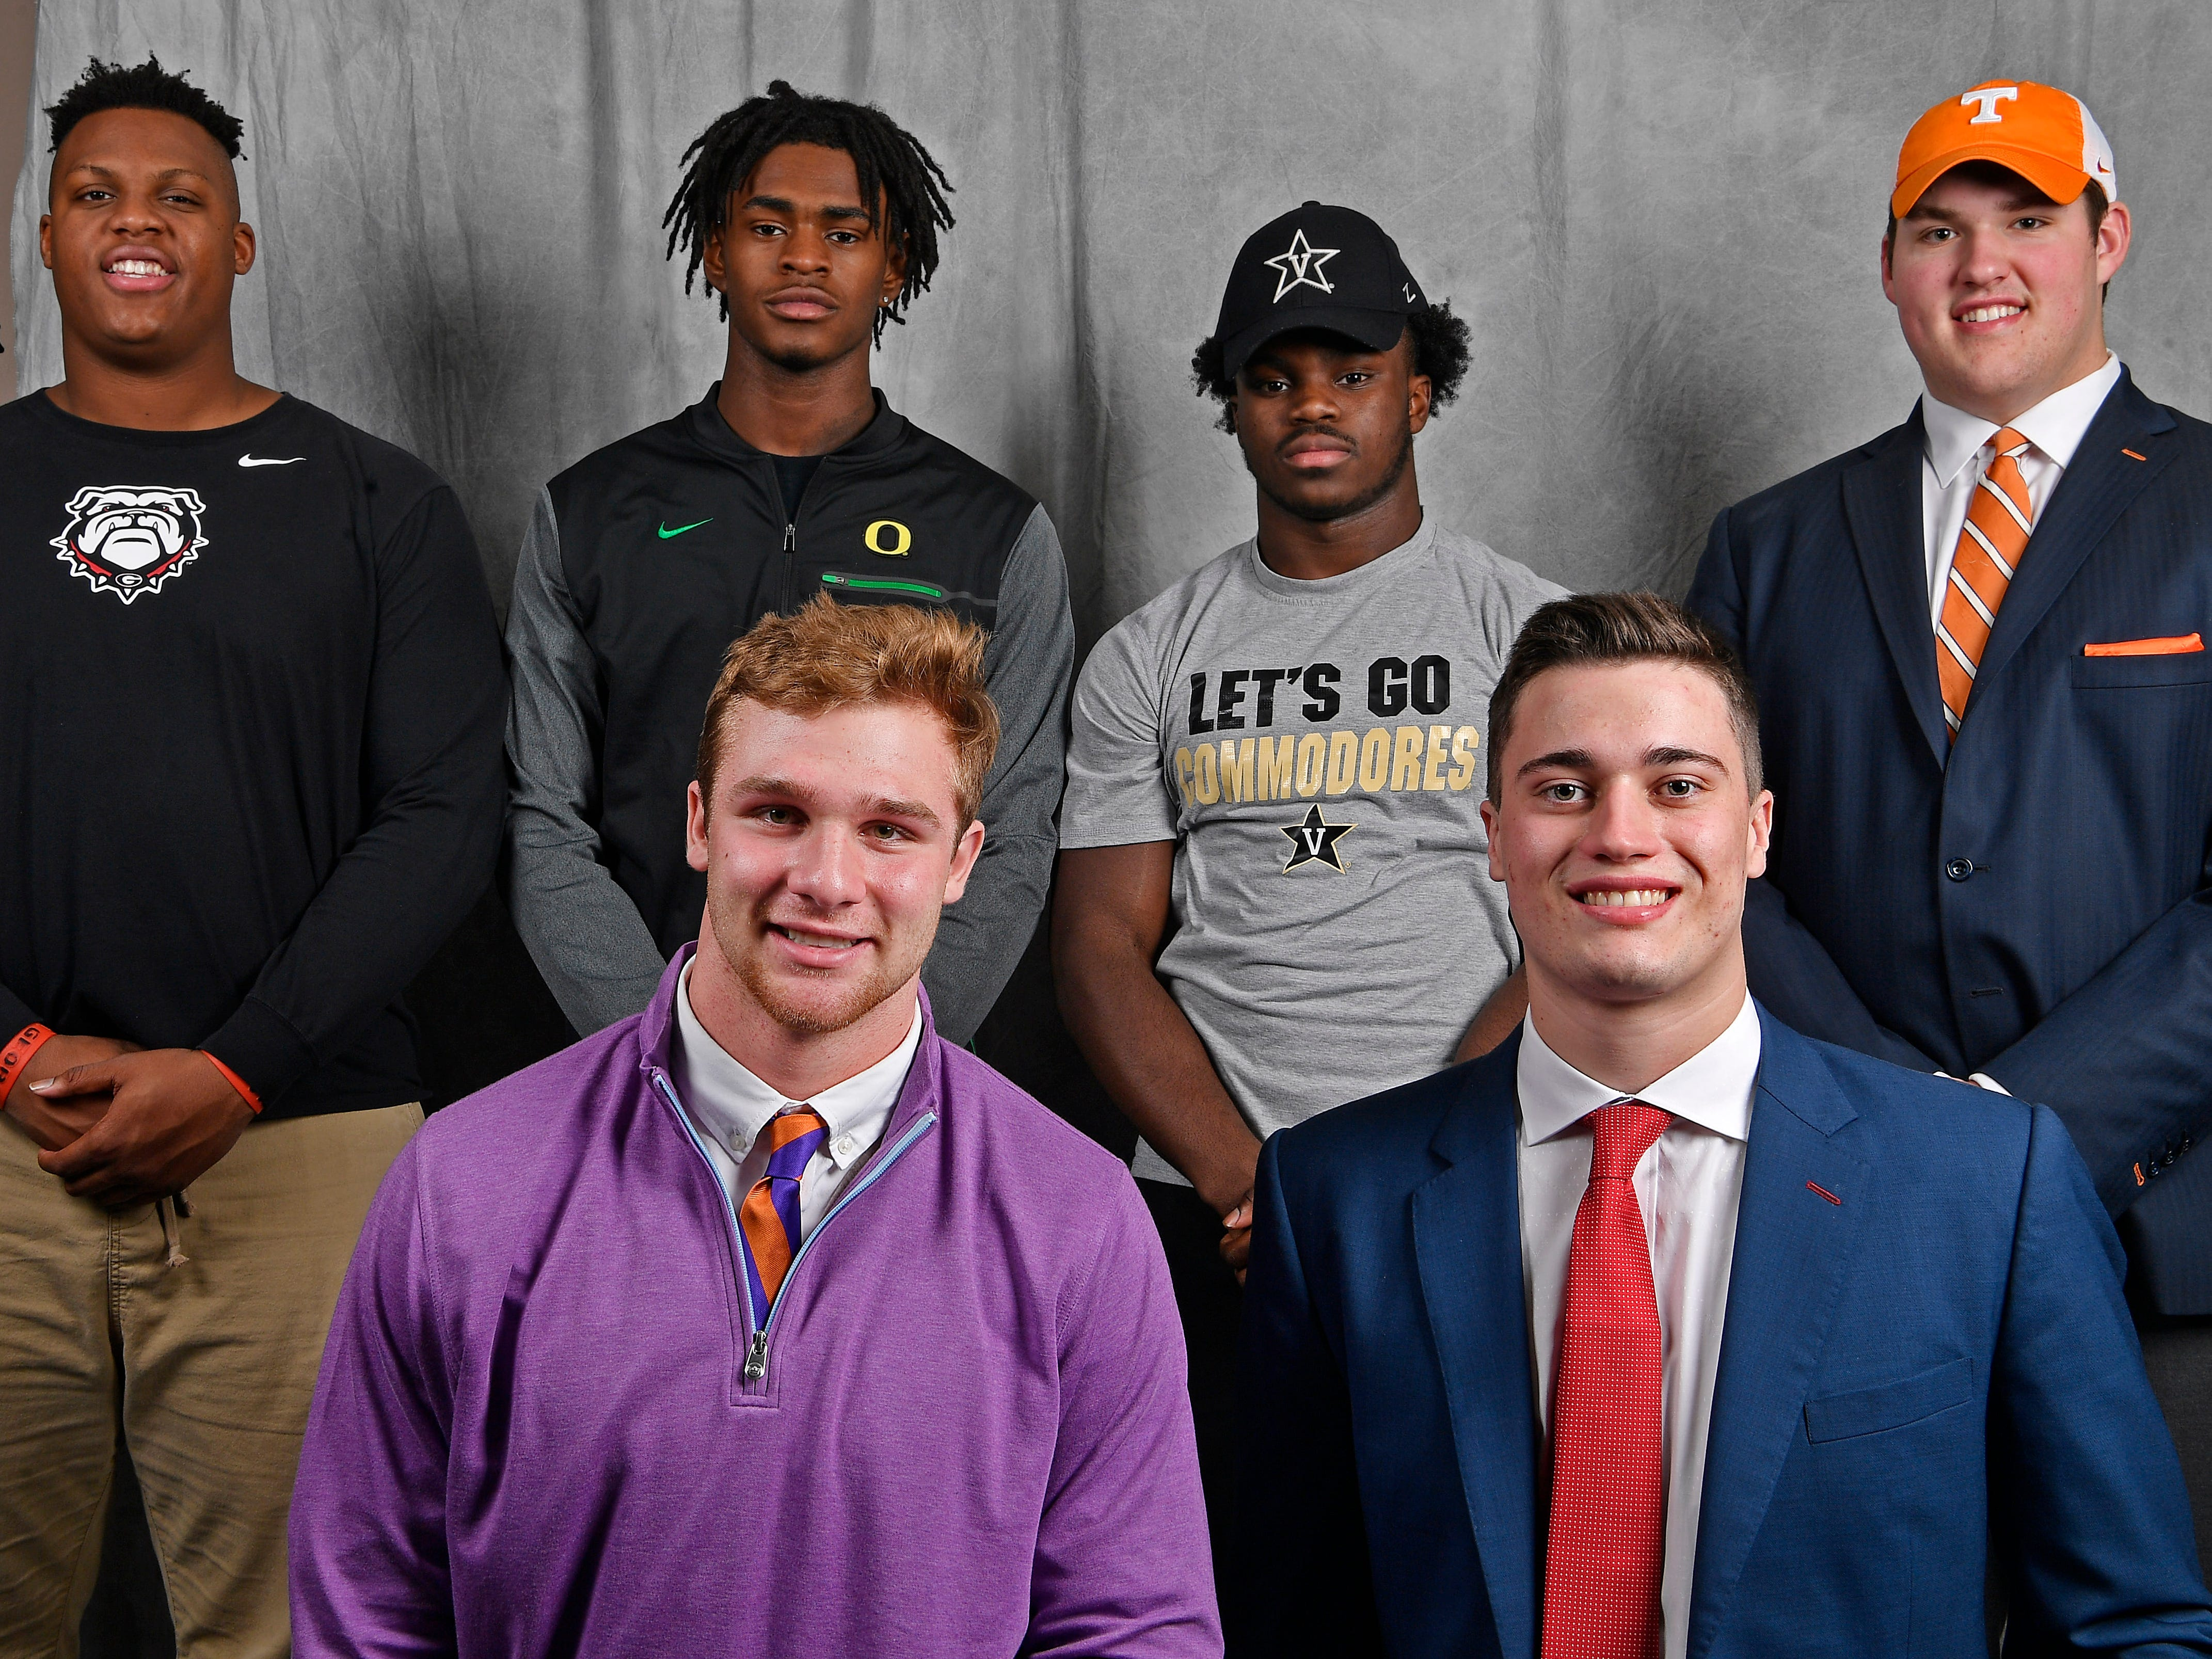 Members of the Tennessean's Dandy Dozen include (in front from left): CPA's Kane Patterson and MBA's Jackson Hannah. In the back, from left, are FRA's Tymon Mitchell, FRA's Lance Wilhoite, Pearl-Cohn's Jayden Harris and MBA's Jackson Lampley. The six athletes were all part of the Tennessean's Bootleg: Signing day show.